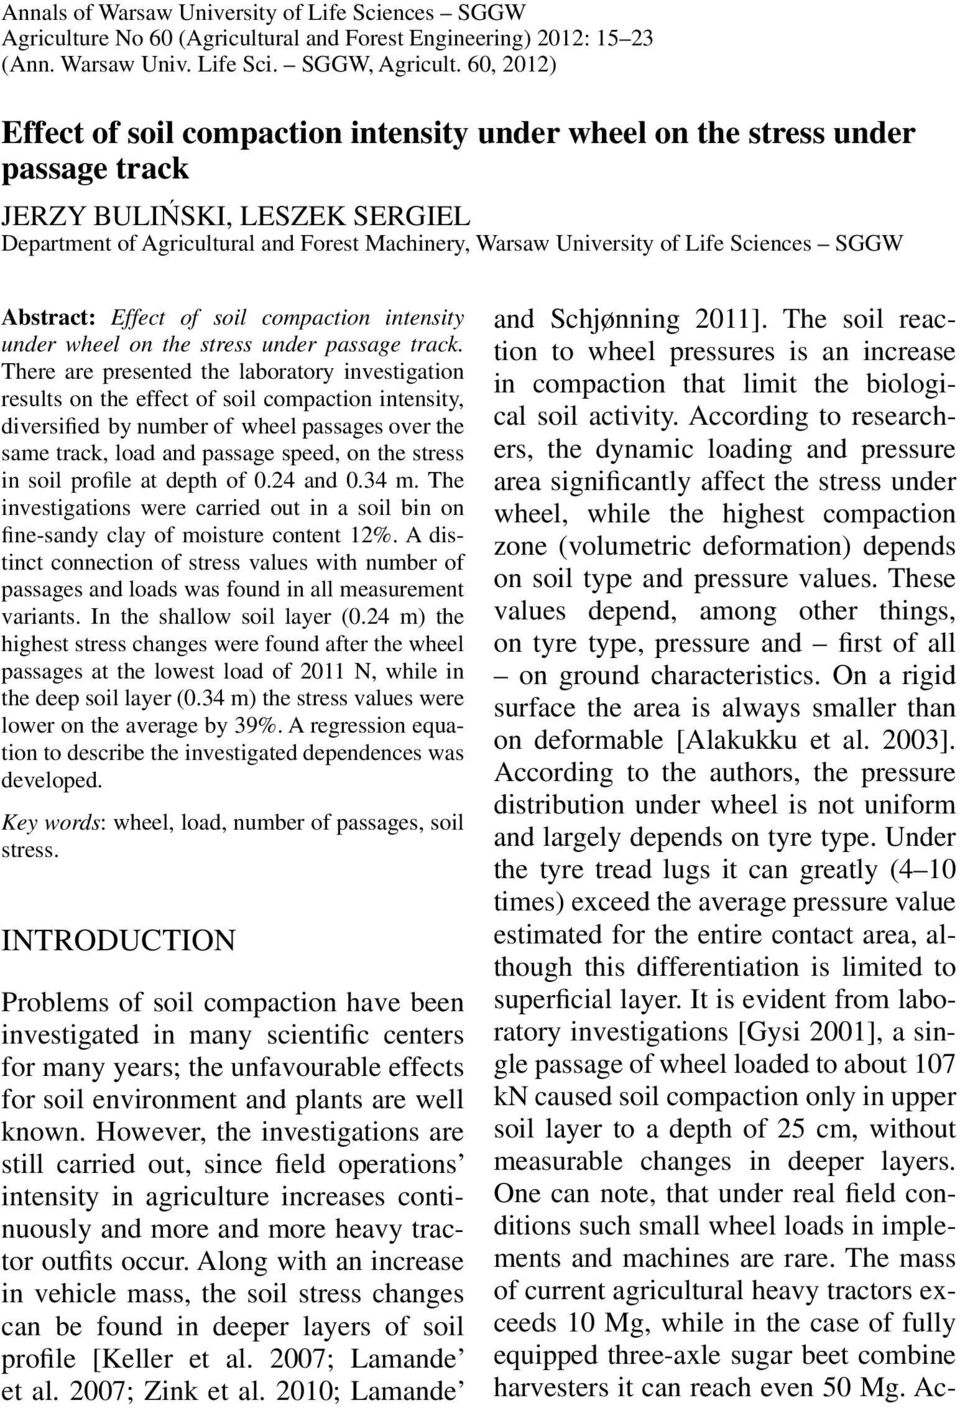 Sciences SGGW Abstract: Effect of soil compaction intensity under wheel on the stress under passage track.